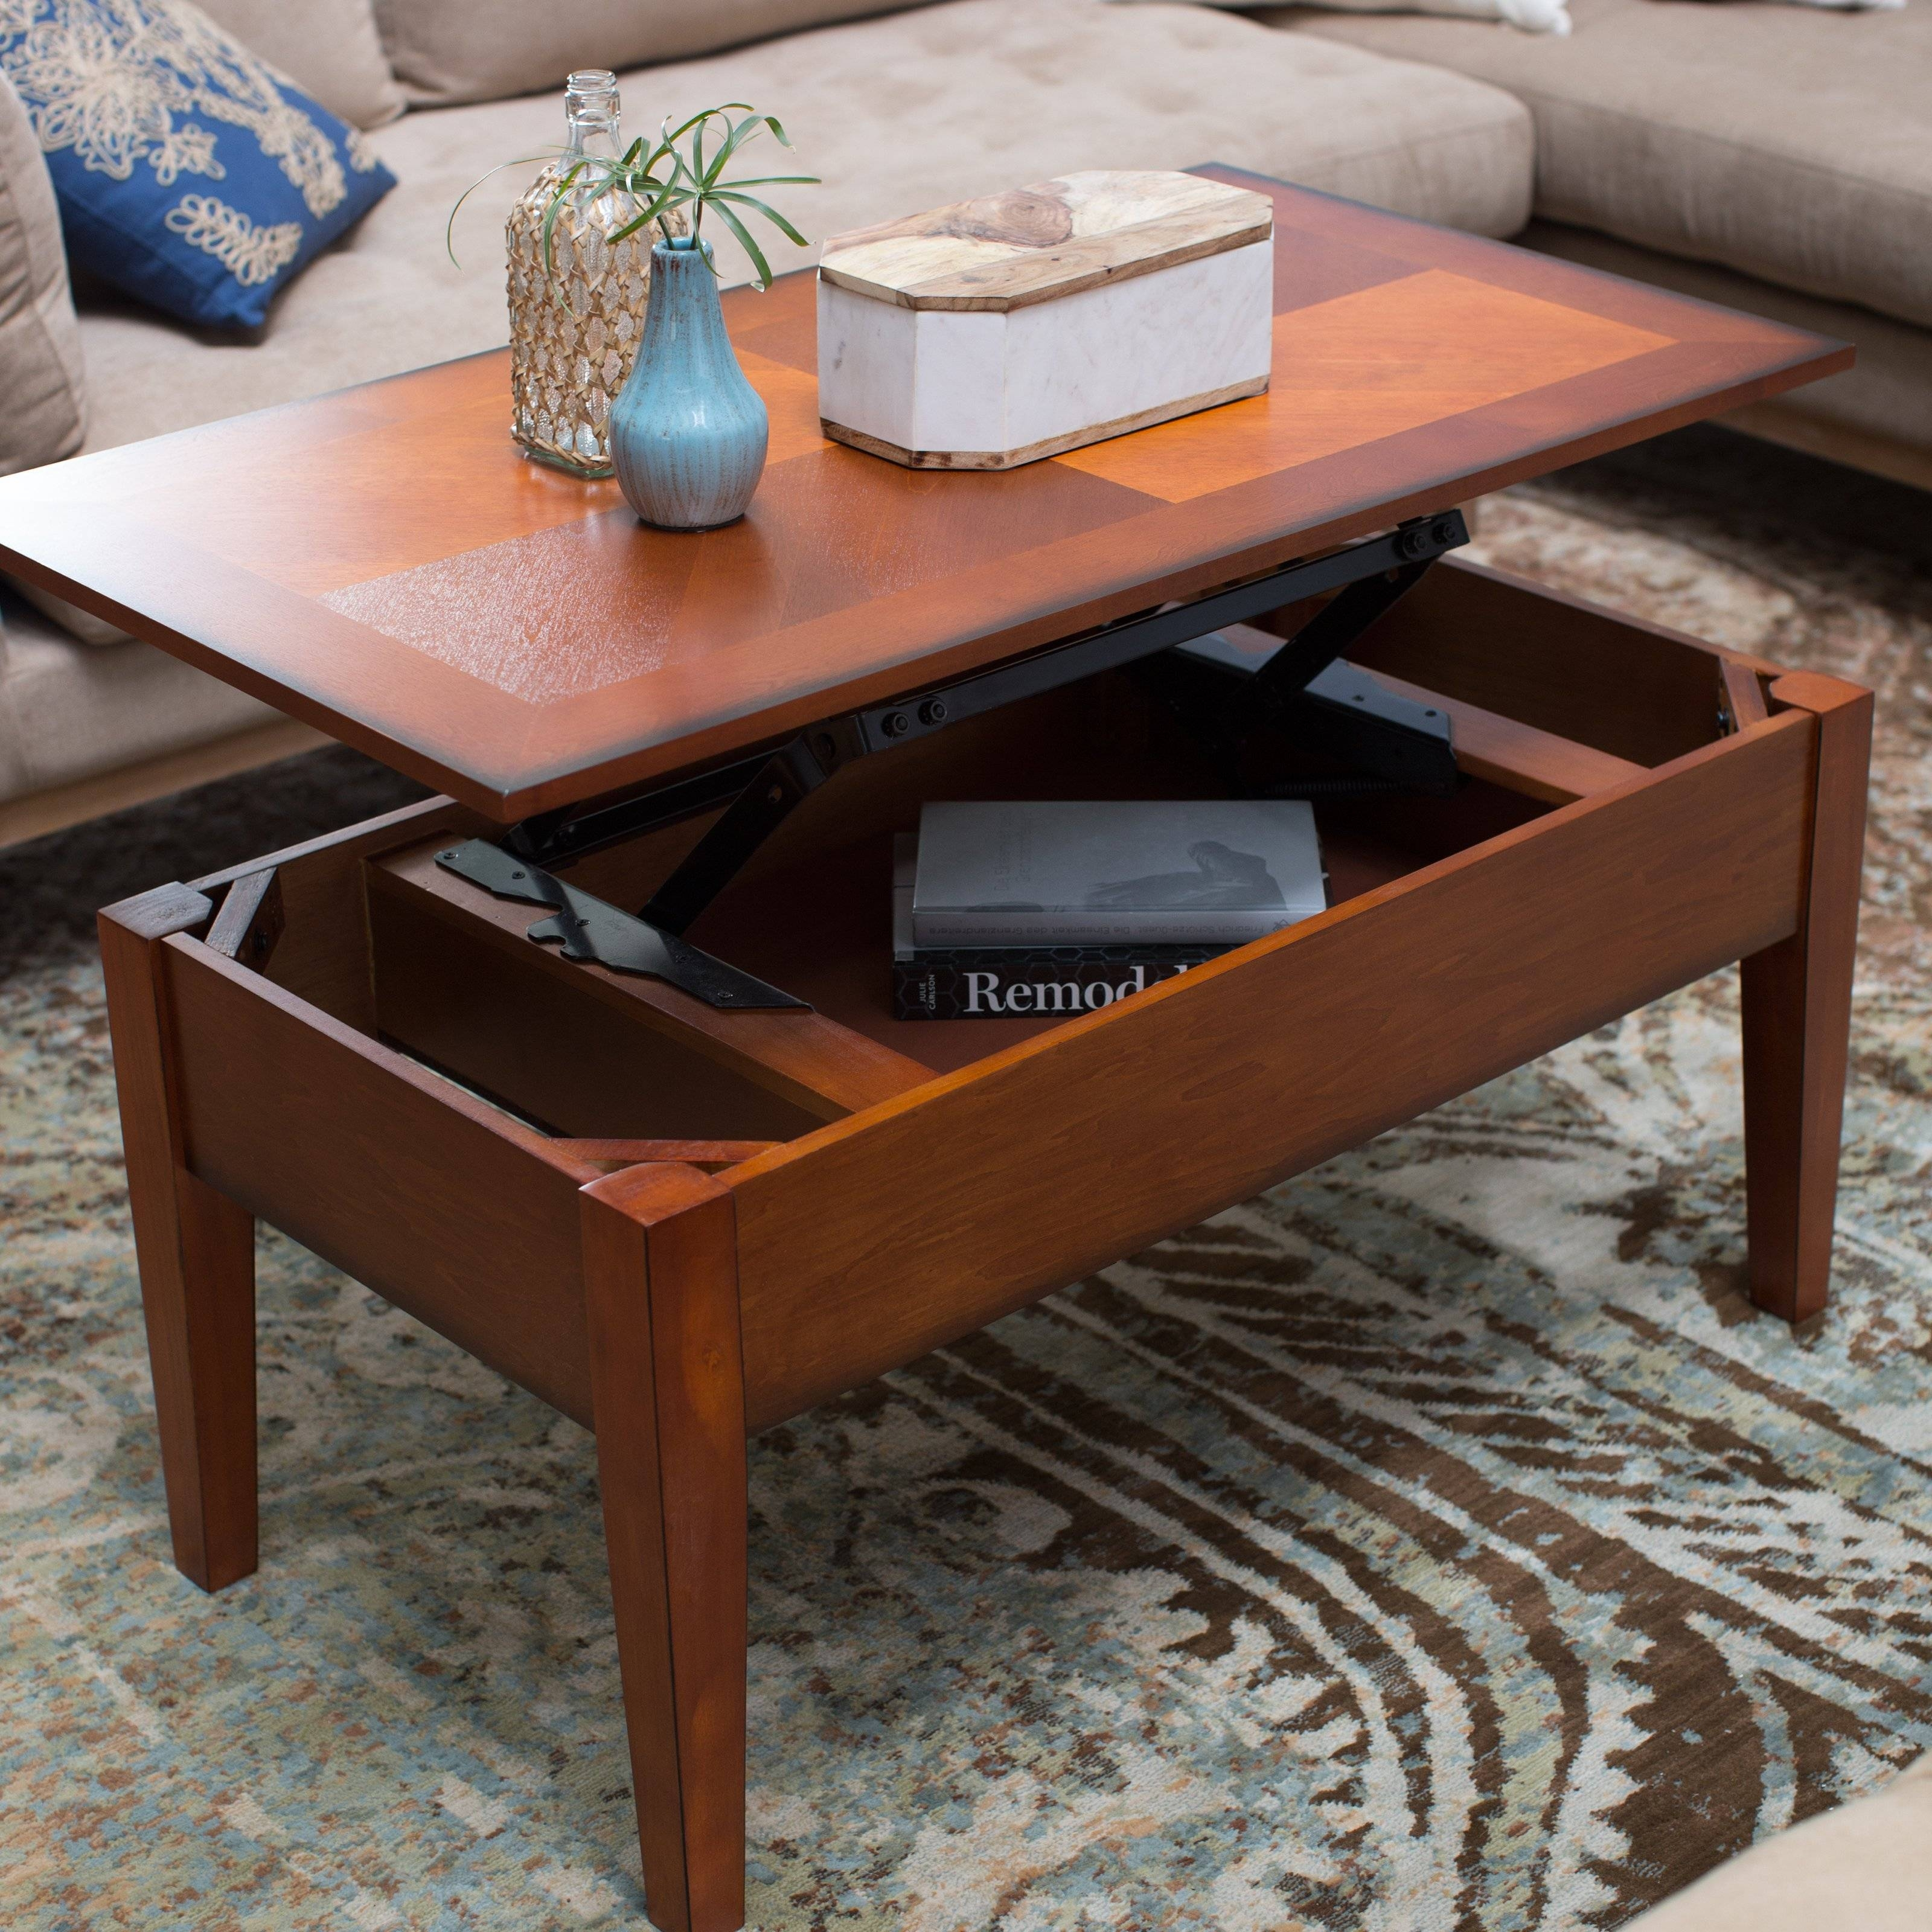 Turner Lift Top Coffee Table - Oak | Hayneedle regarding Oak Coffee Table With Storage (Image 15 of 15)